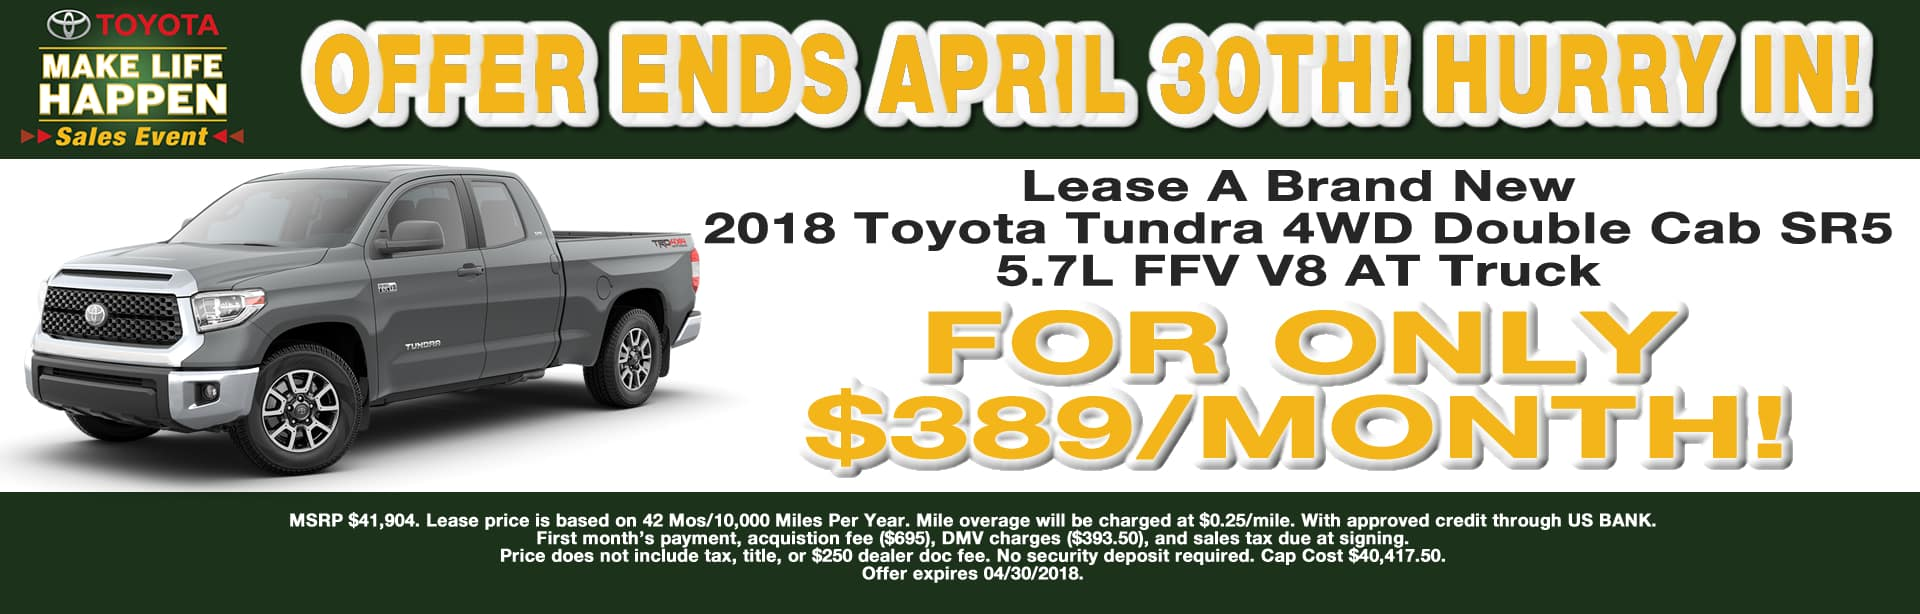 TUNDRA LEASE SPECIAL CAIN TOYOTA NORTH CANTON OHIO